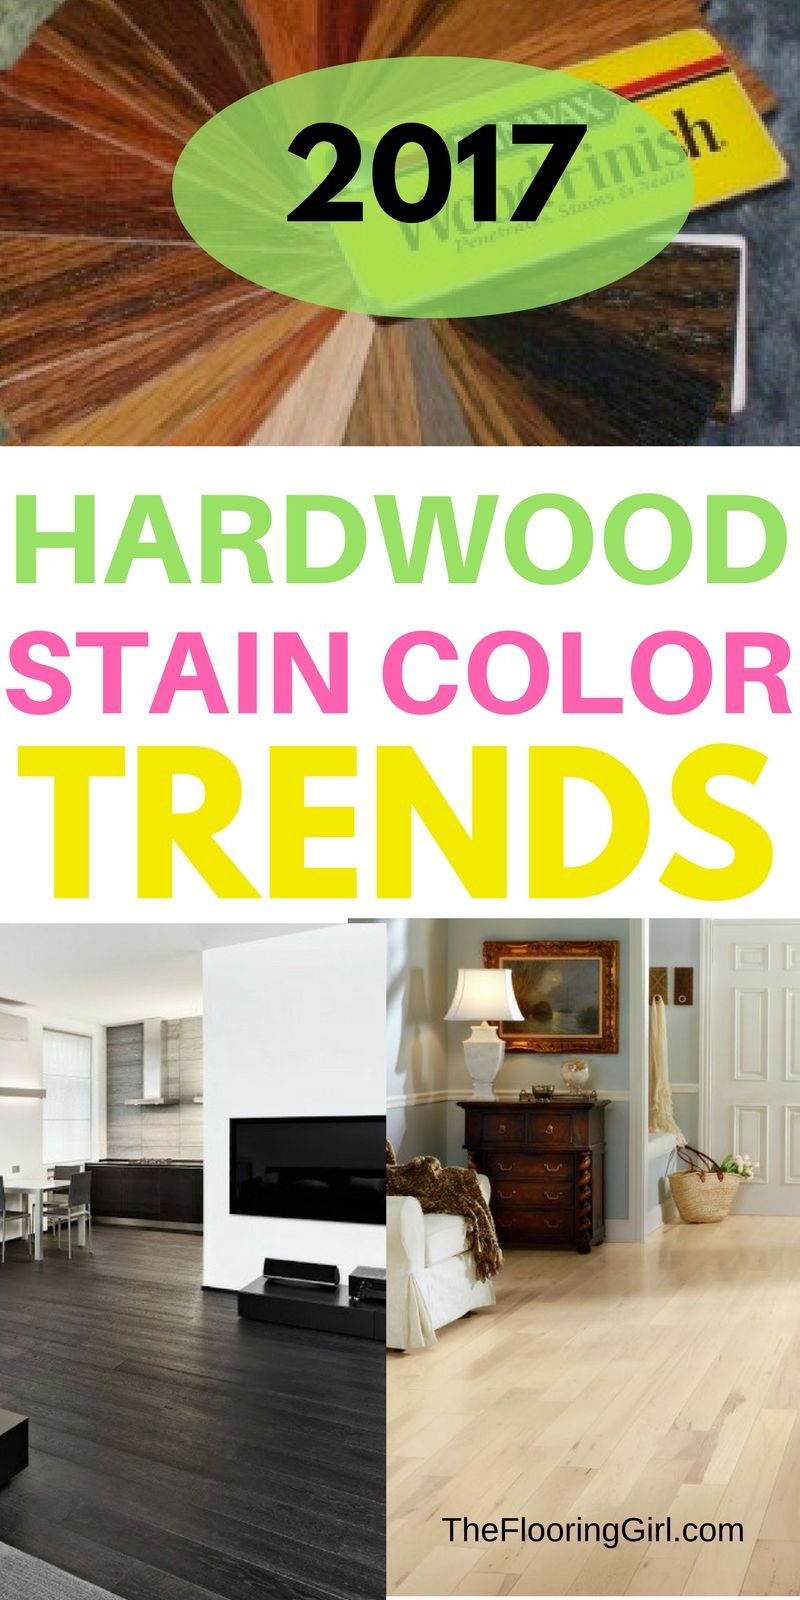 benefits of hardwood floors of hardwood flooring stain color trends 2018 more from the flooring within hardwood flooring stain color trends for 2017 hardwood colors that are in style theflooringgirl com